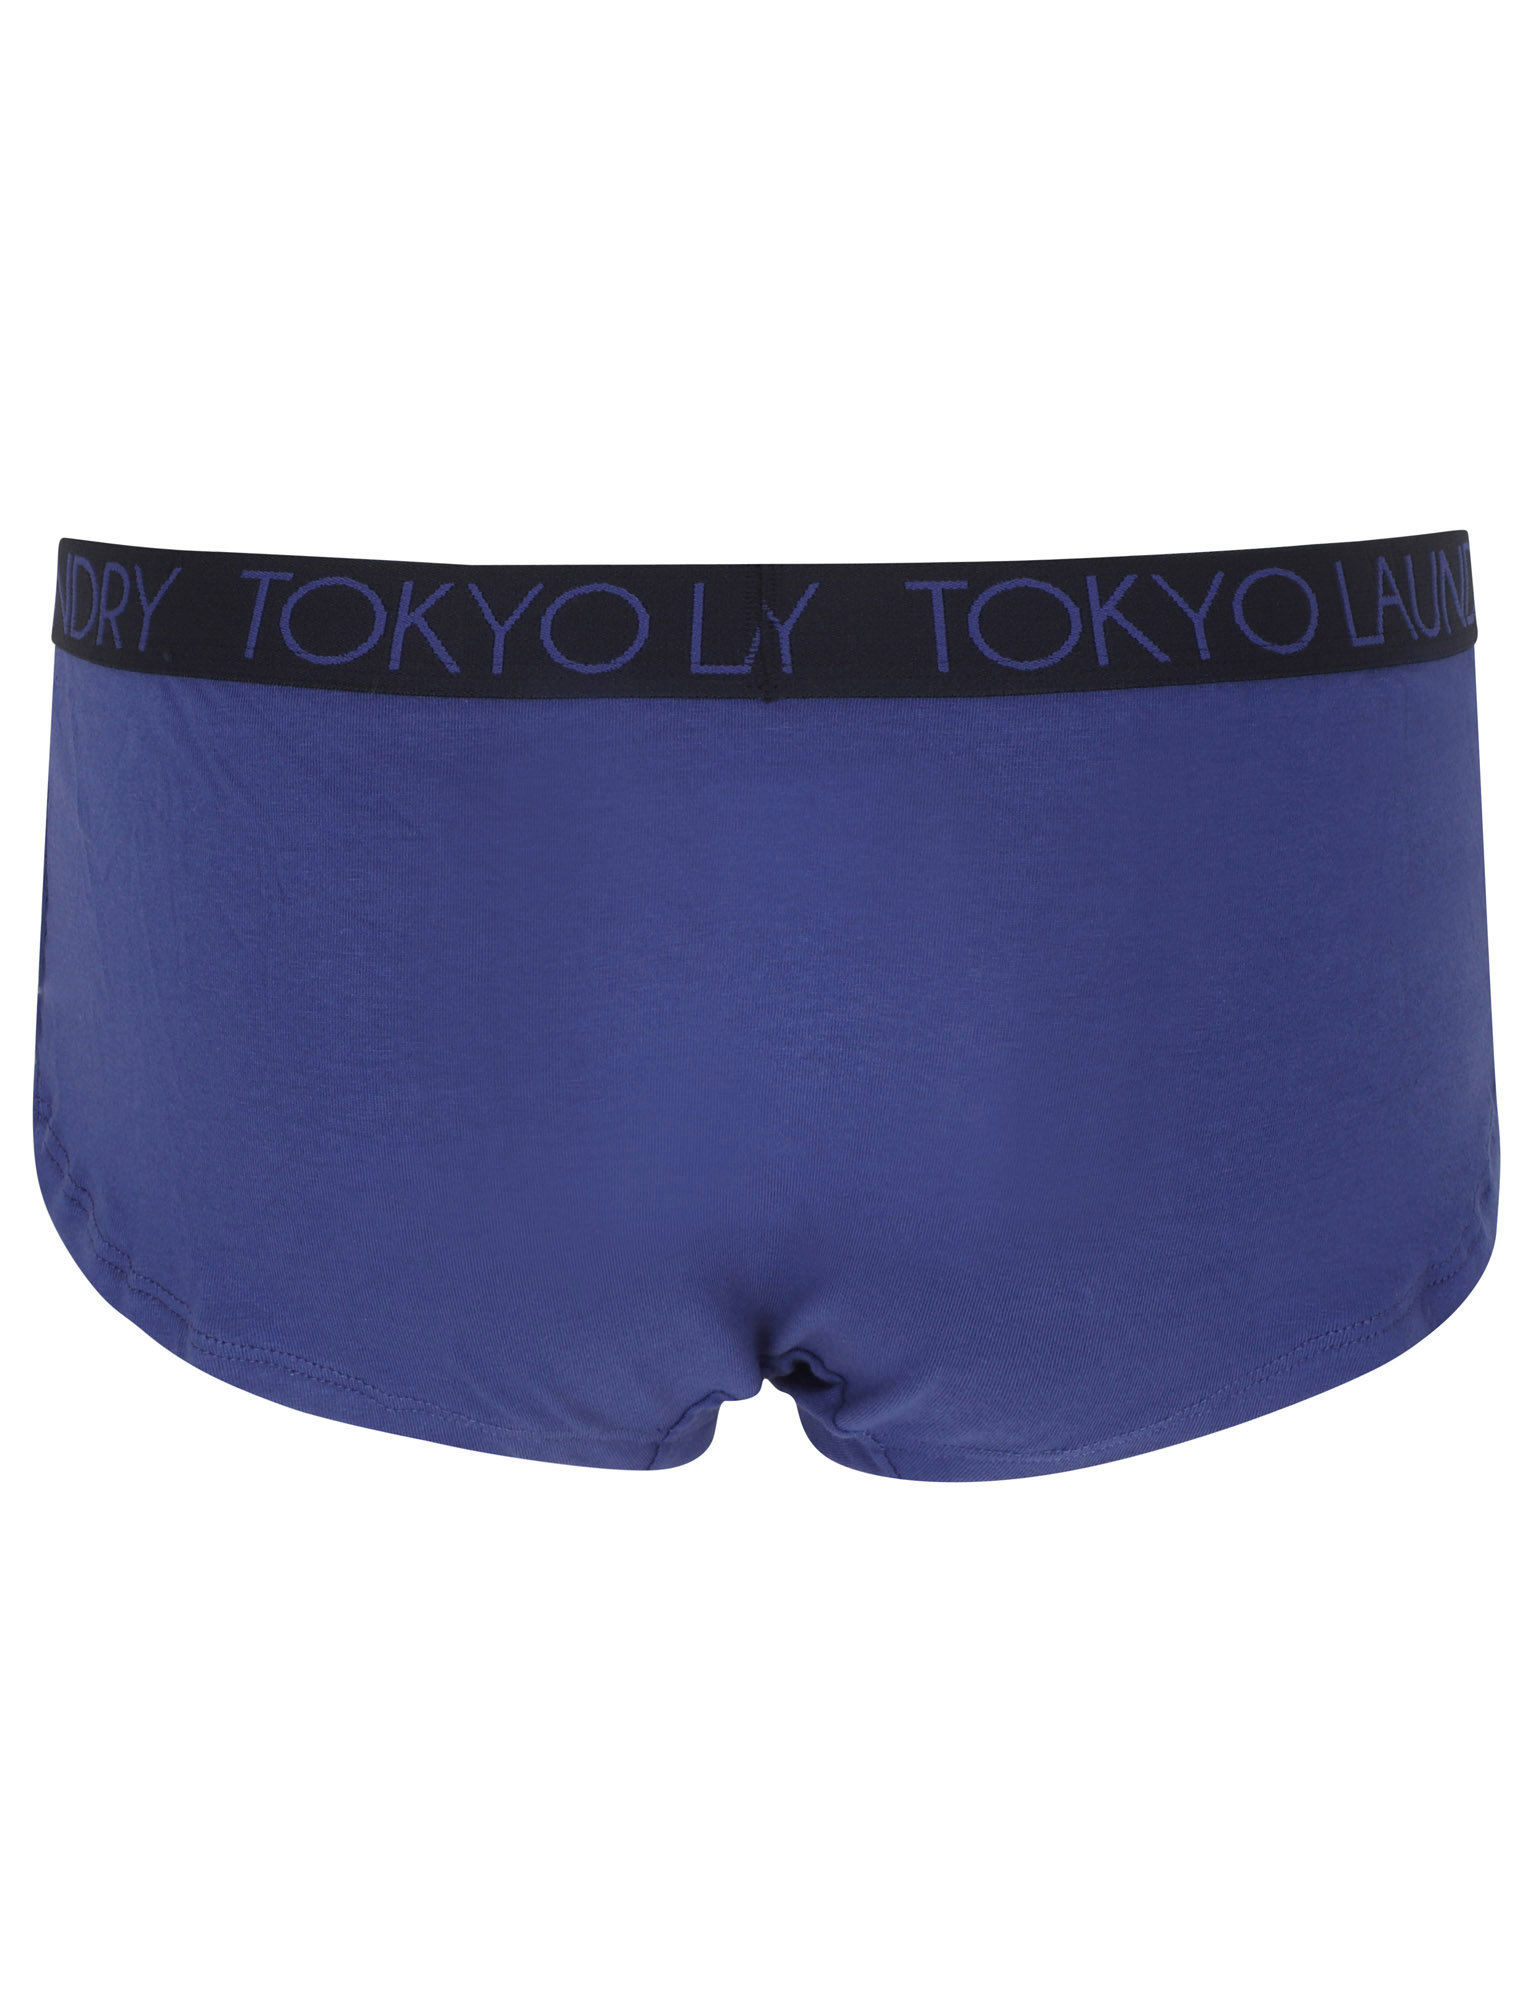 Tokyo-Laundry-Women-039-s-5-Pack-Briefs-Knickers-Underwear-Boxers-Elasticated-Waist thumbnail 44